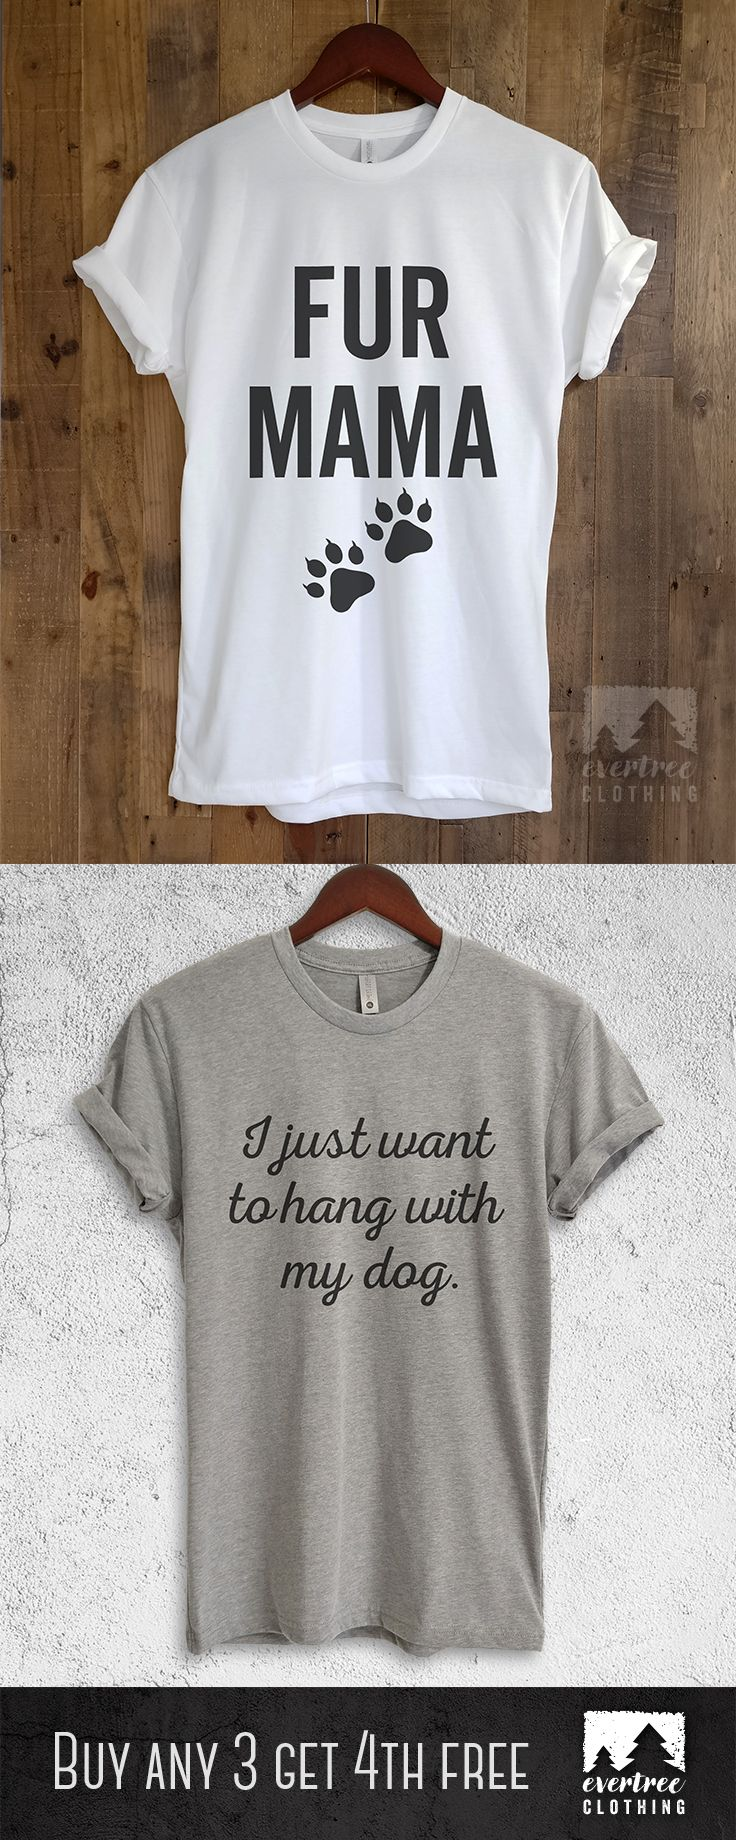 Funny T-shirts & Tank Tops for Everyday Wear. Soft & Stylish.